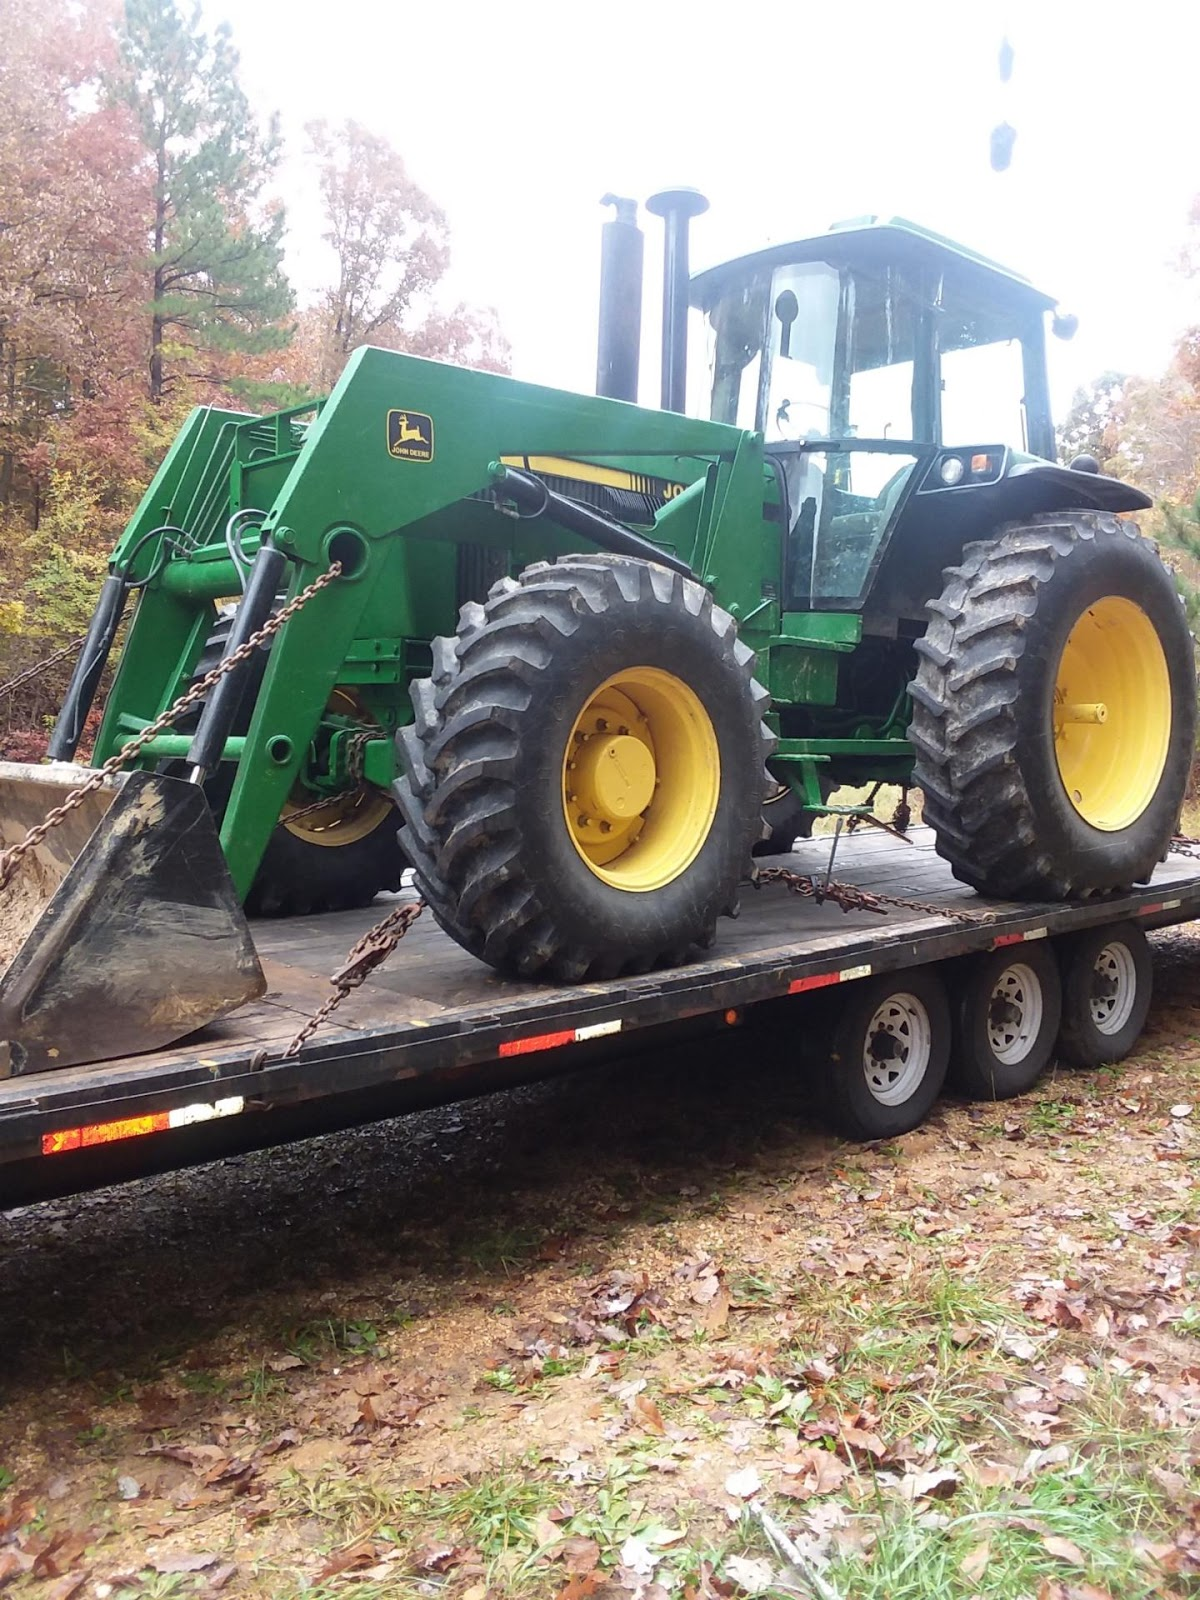 1995 John Deere 4050 tractor being hauled